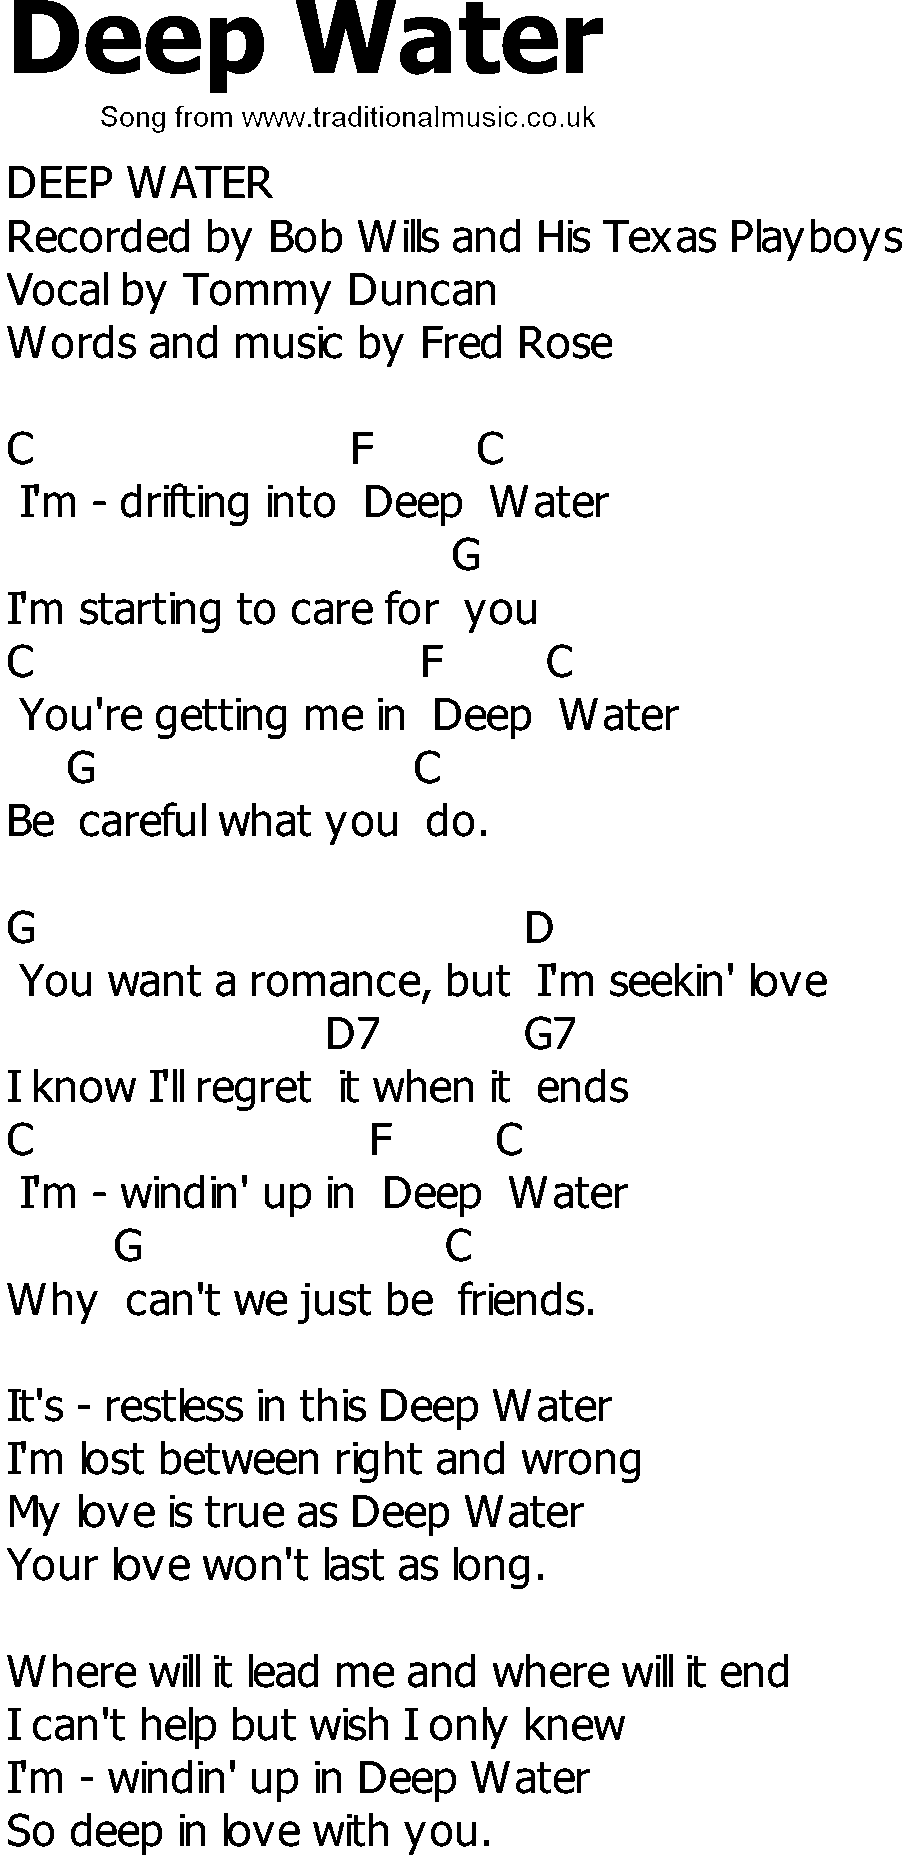 Old Country Song Lyrics With Chords  Deep Water